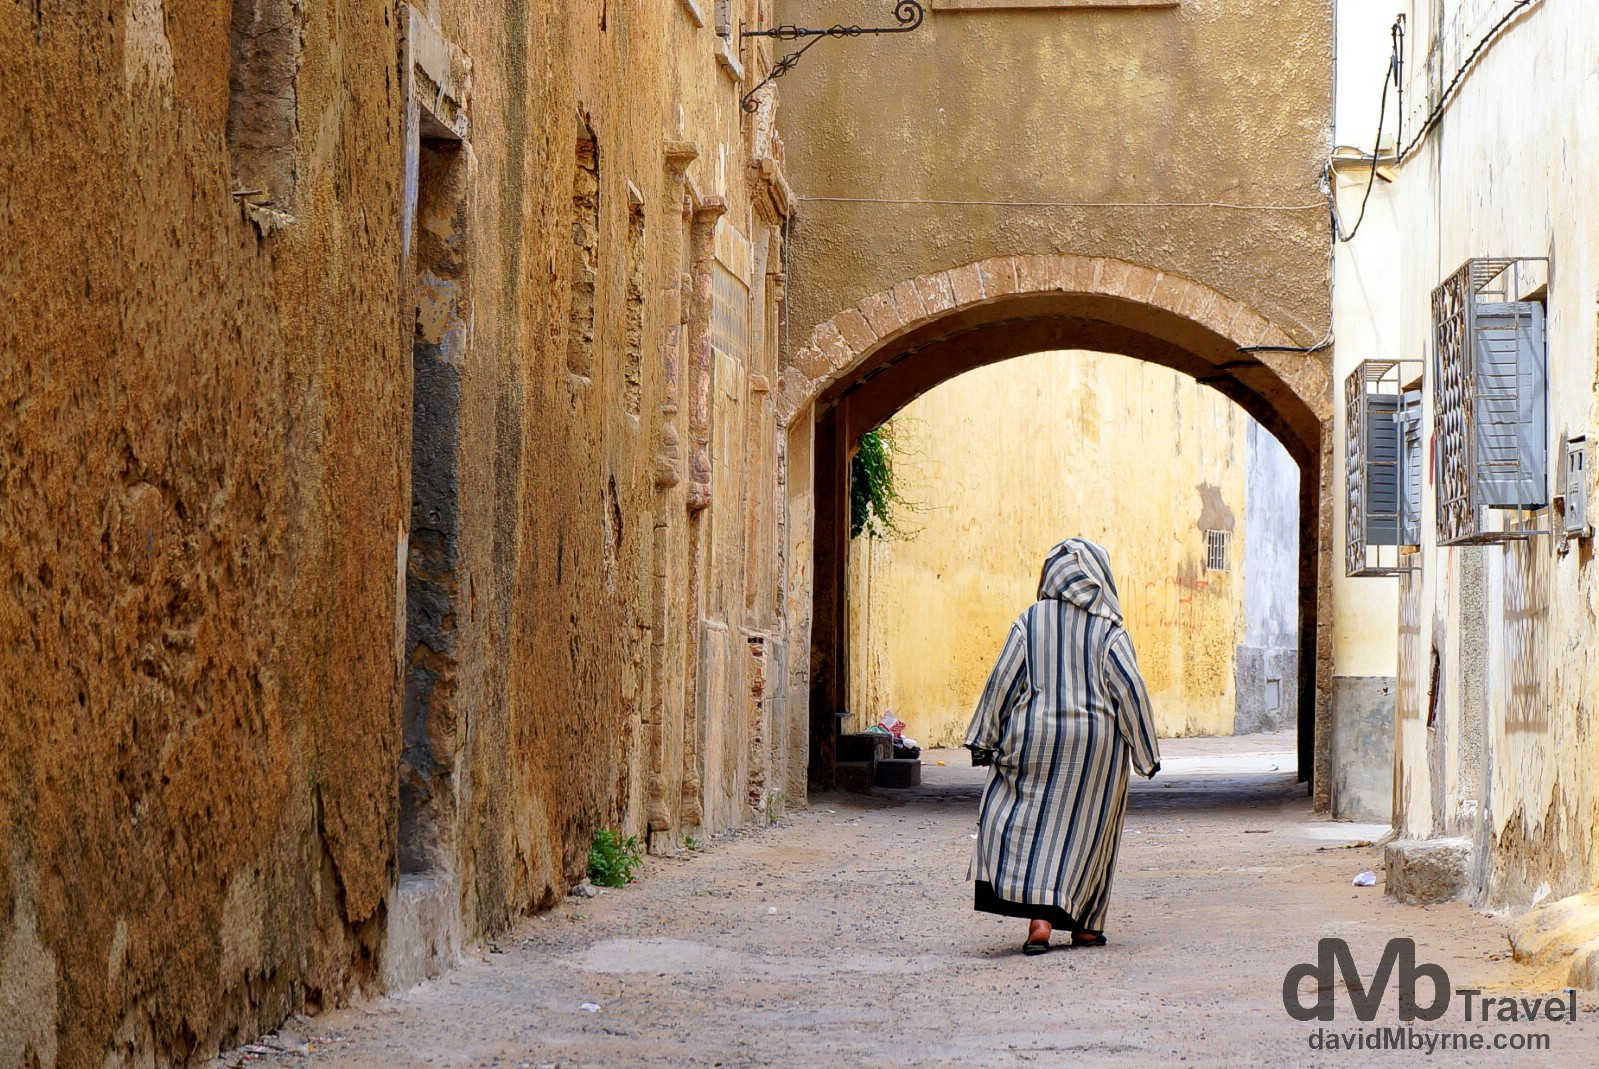 In the lanes of the UNESCO-listed Cite Portugaise, El Jadida, Morocco. May 1st, 2014.